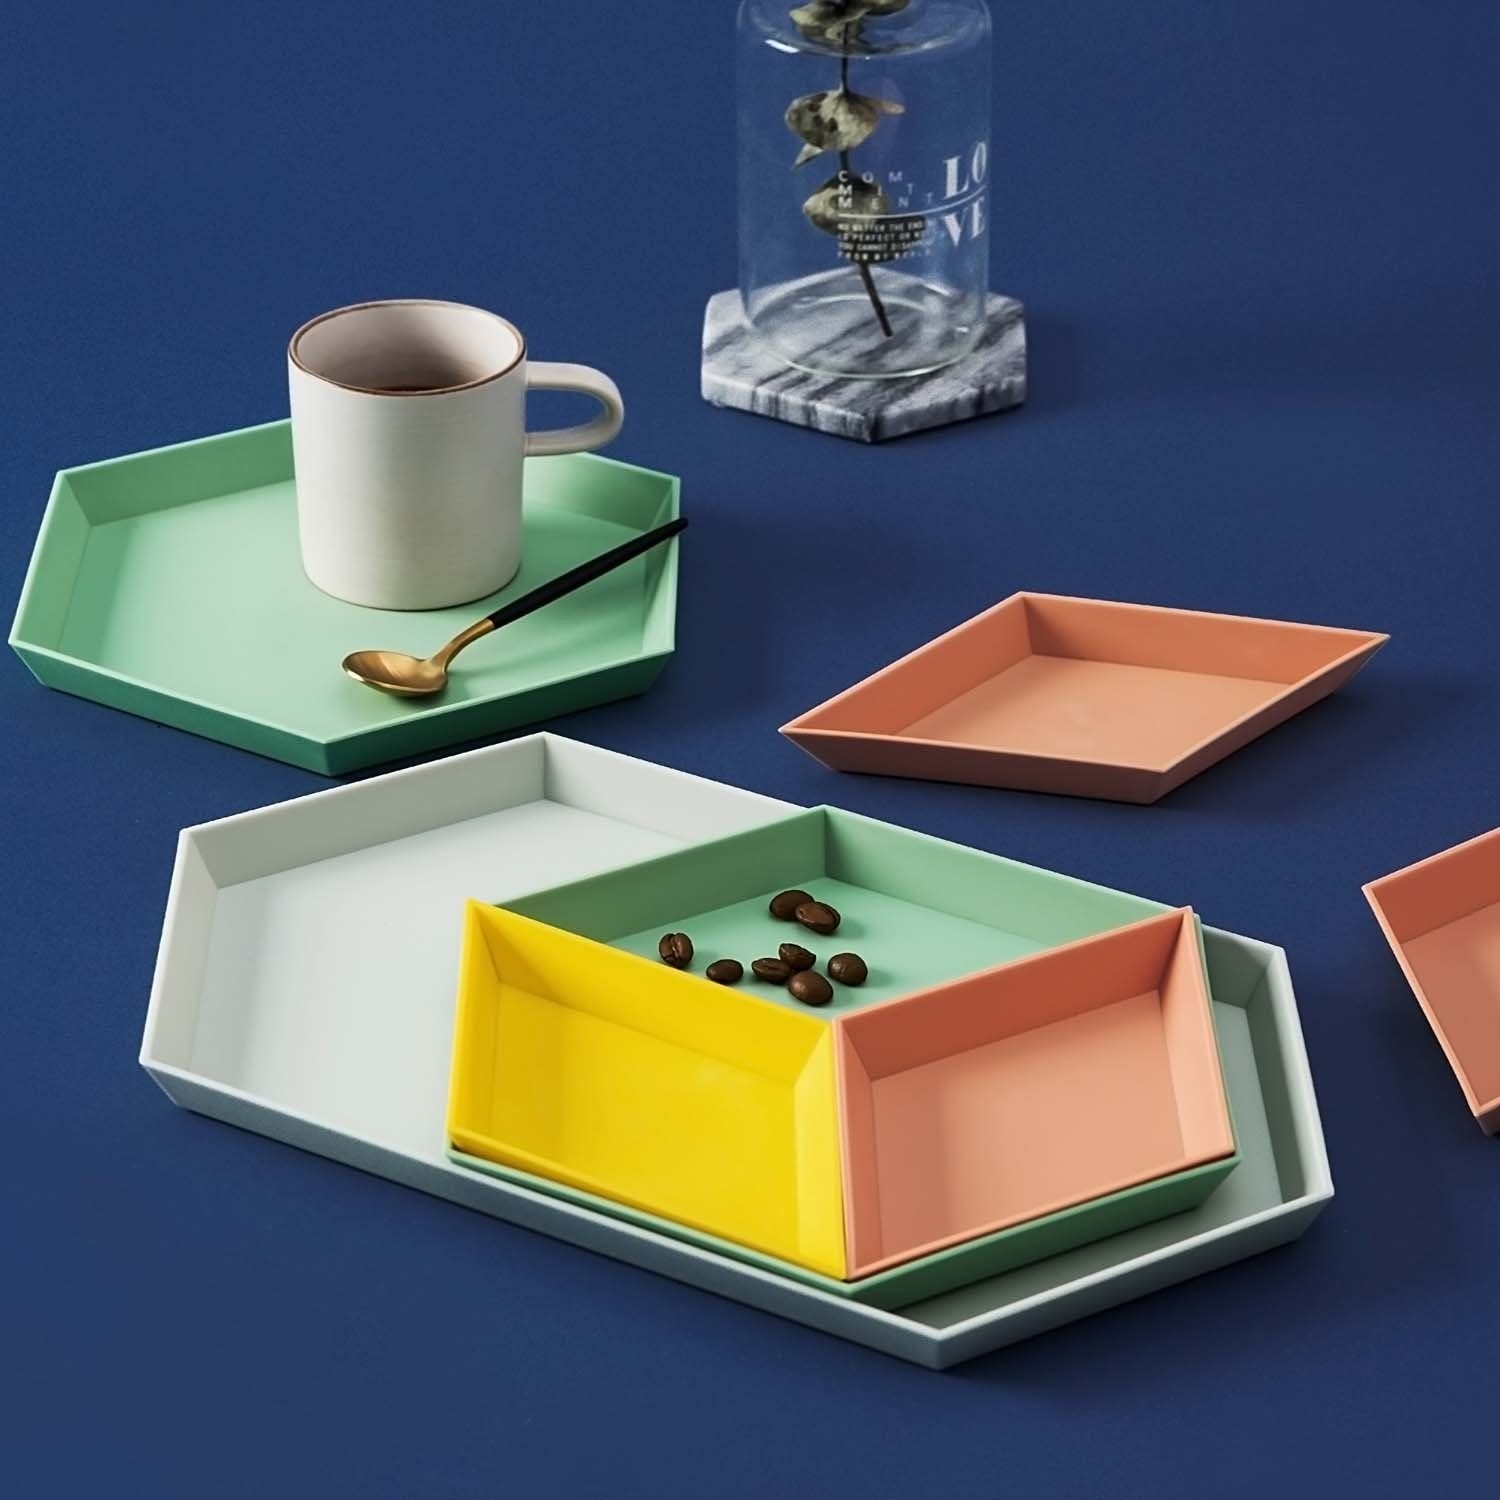 The four trays in different sizes withing each other in yellow, orange, green, and white